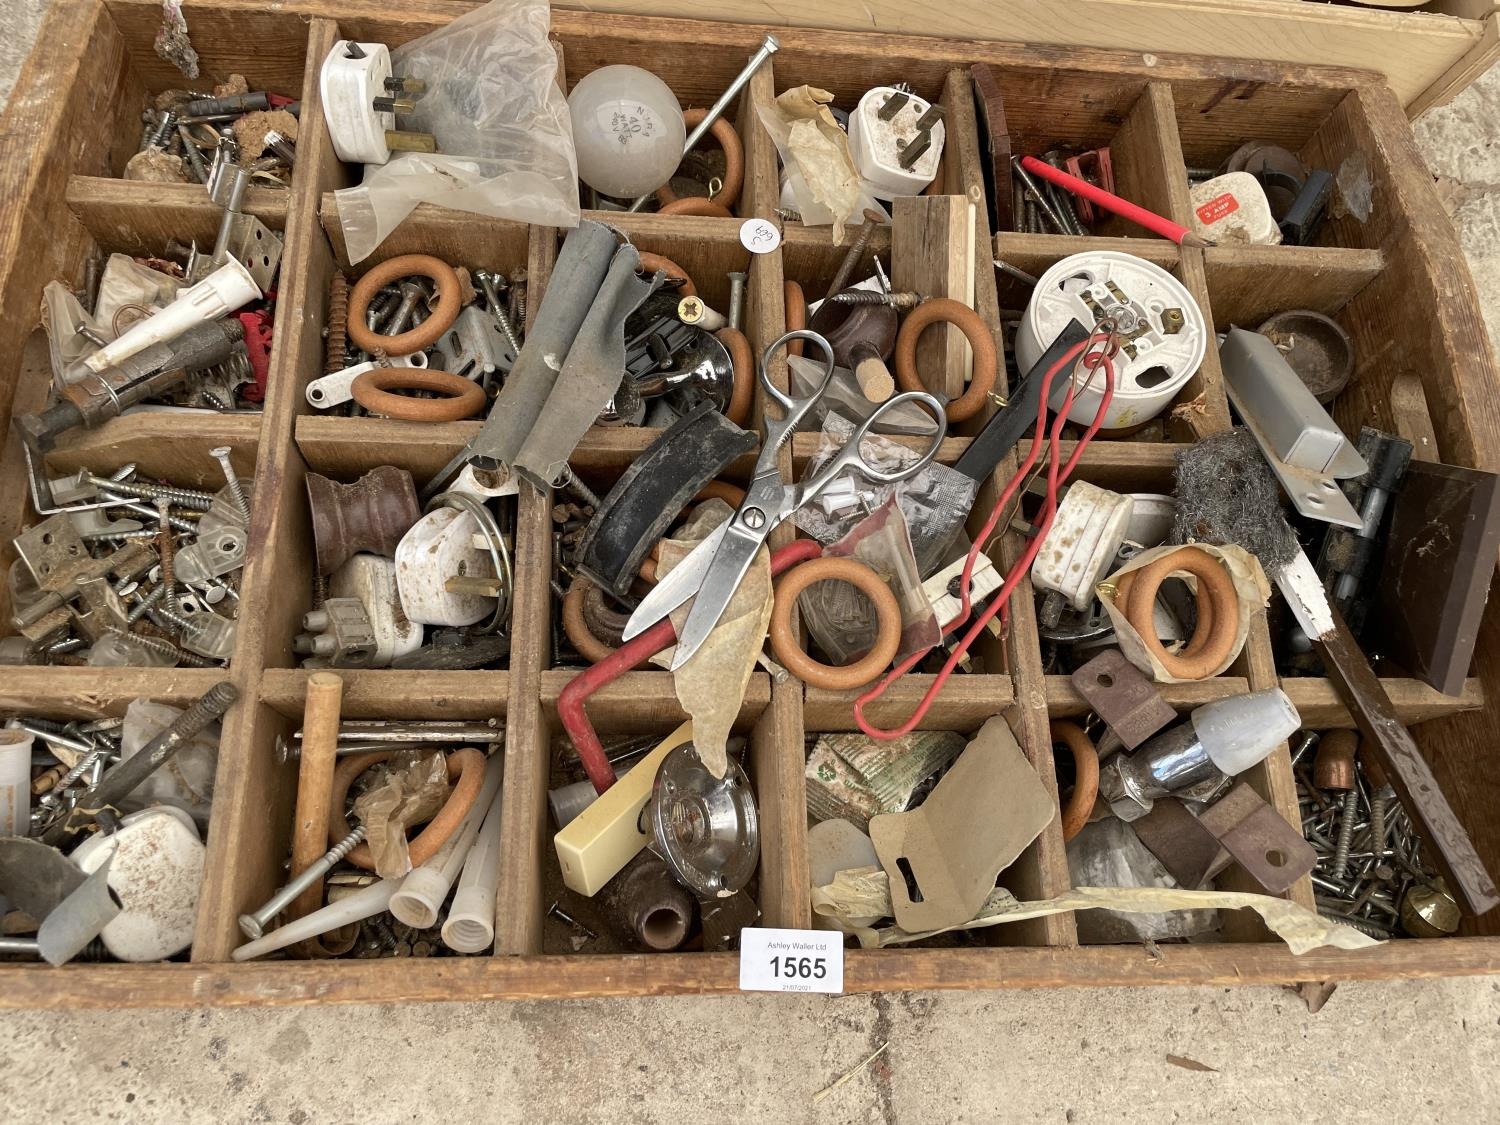 AN ASSORTMENT OF HARDWARE ITEMS TO INCLUDE SCREWS, PLUGS AND SHELVING BRACKETS ETC - Image 3 of 6